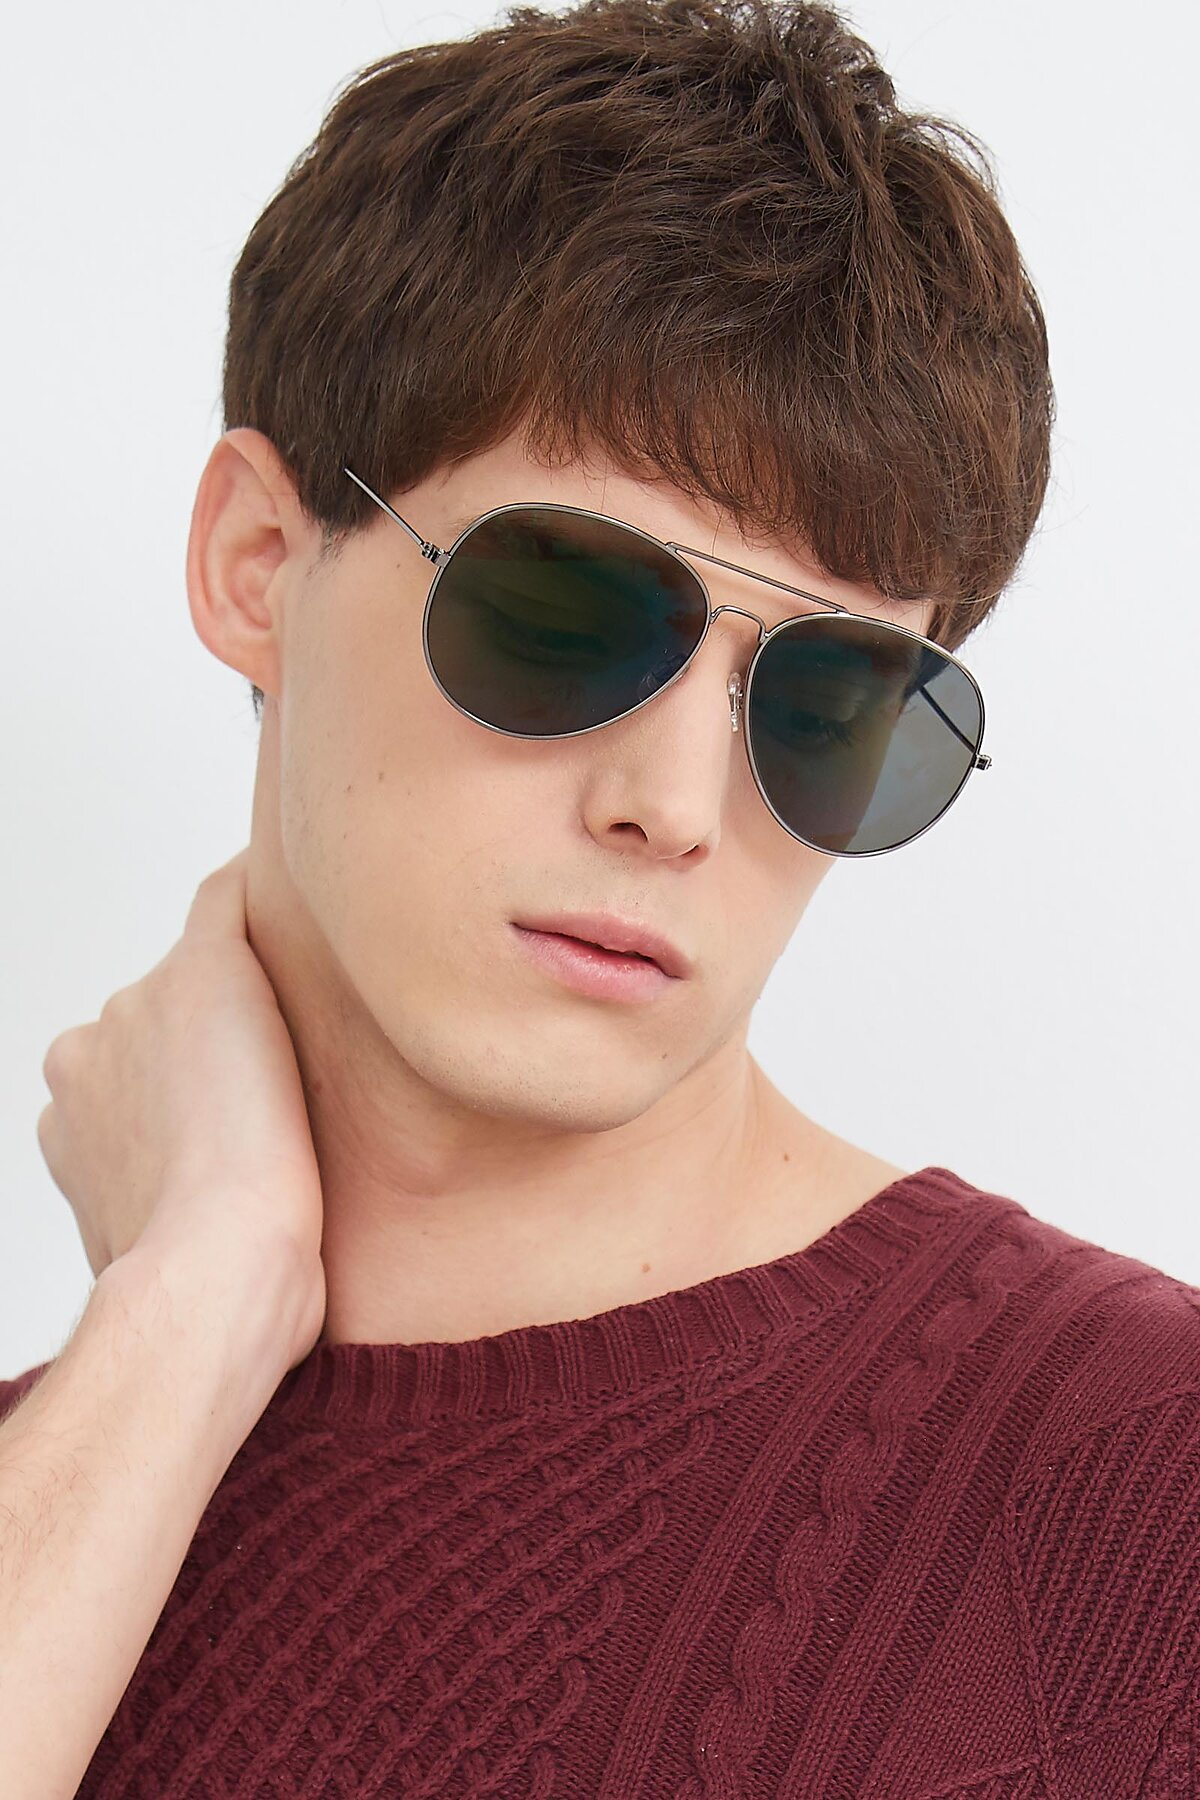 Men's lifestyle photography (portrait-2) of SSR179 in Gunmetal with Green Tinted Lenses